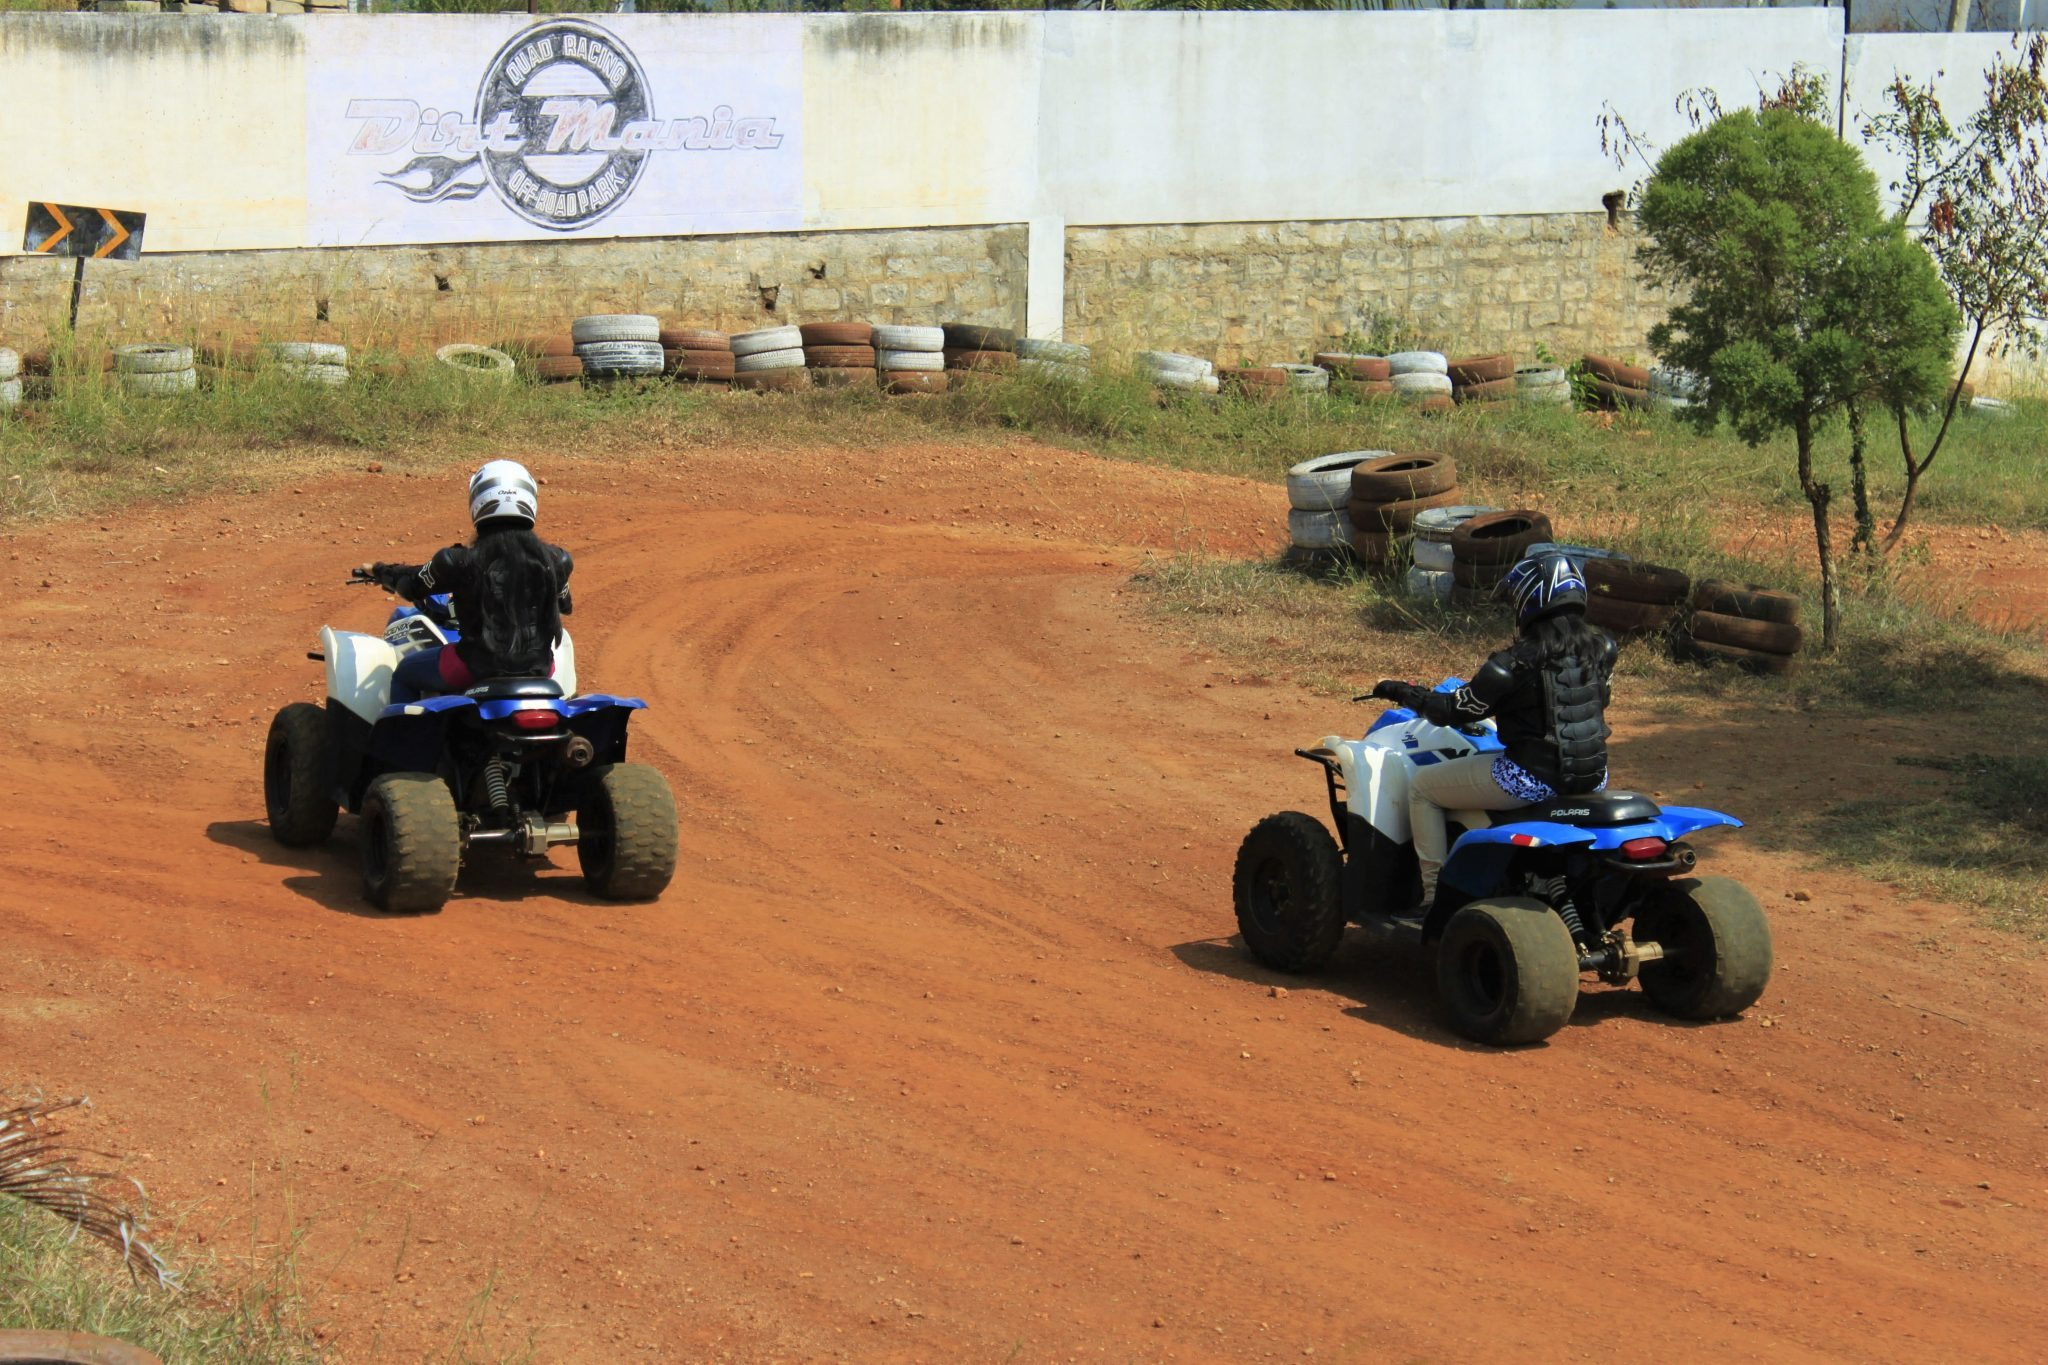 ATV Ride At Dirt Mania